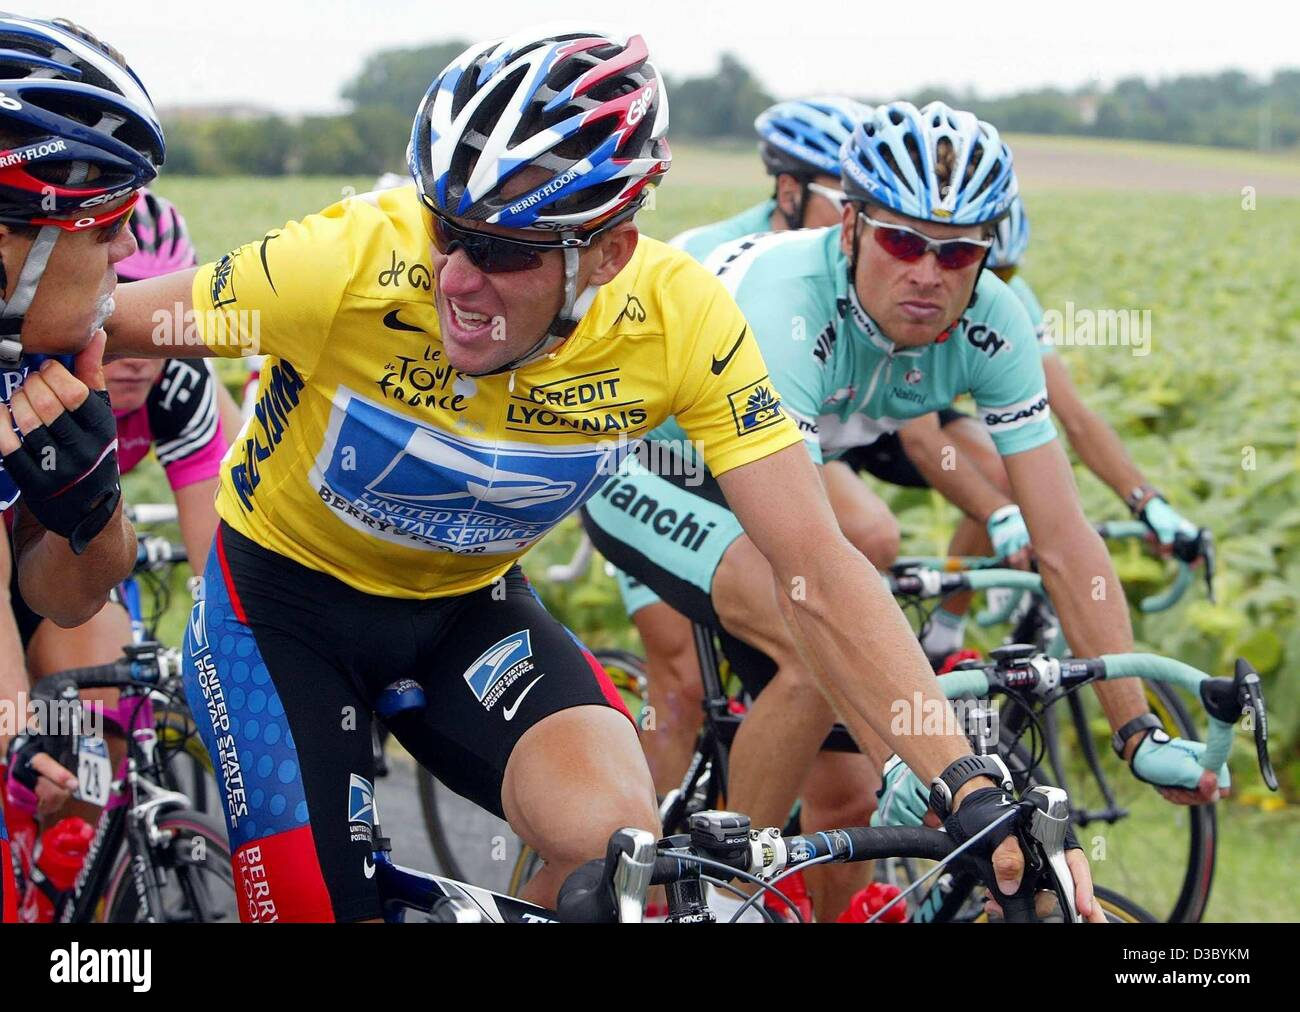 (dpa) - German Jan Ullrich (R) of Team Bianchi looks over to (dpa) - German  Jan Ullrich (R) of Team Bianchi looks over to US Postal-Berry Floor s Lance  ... 578452664